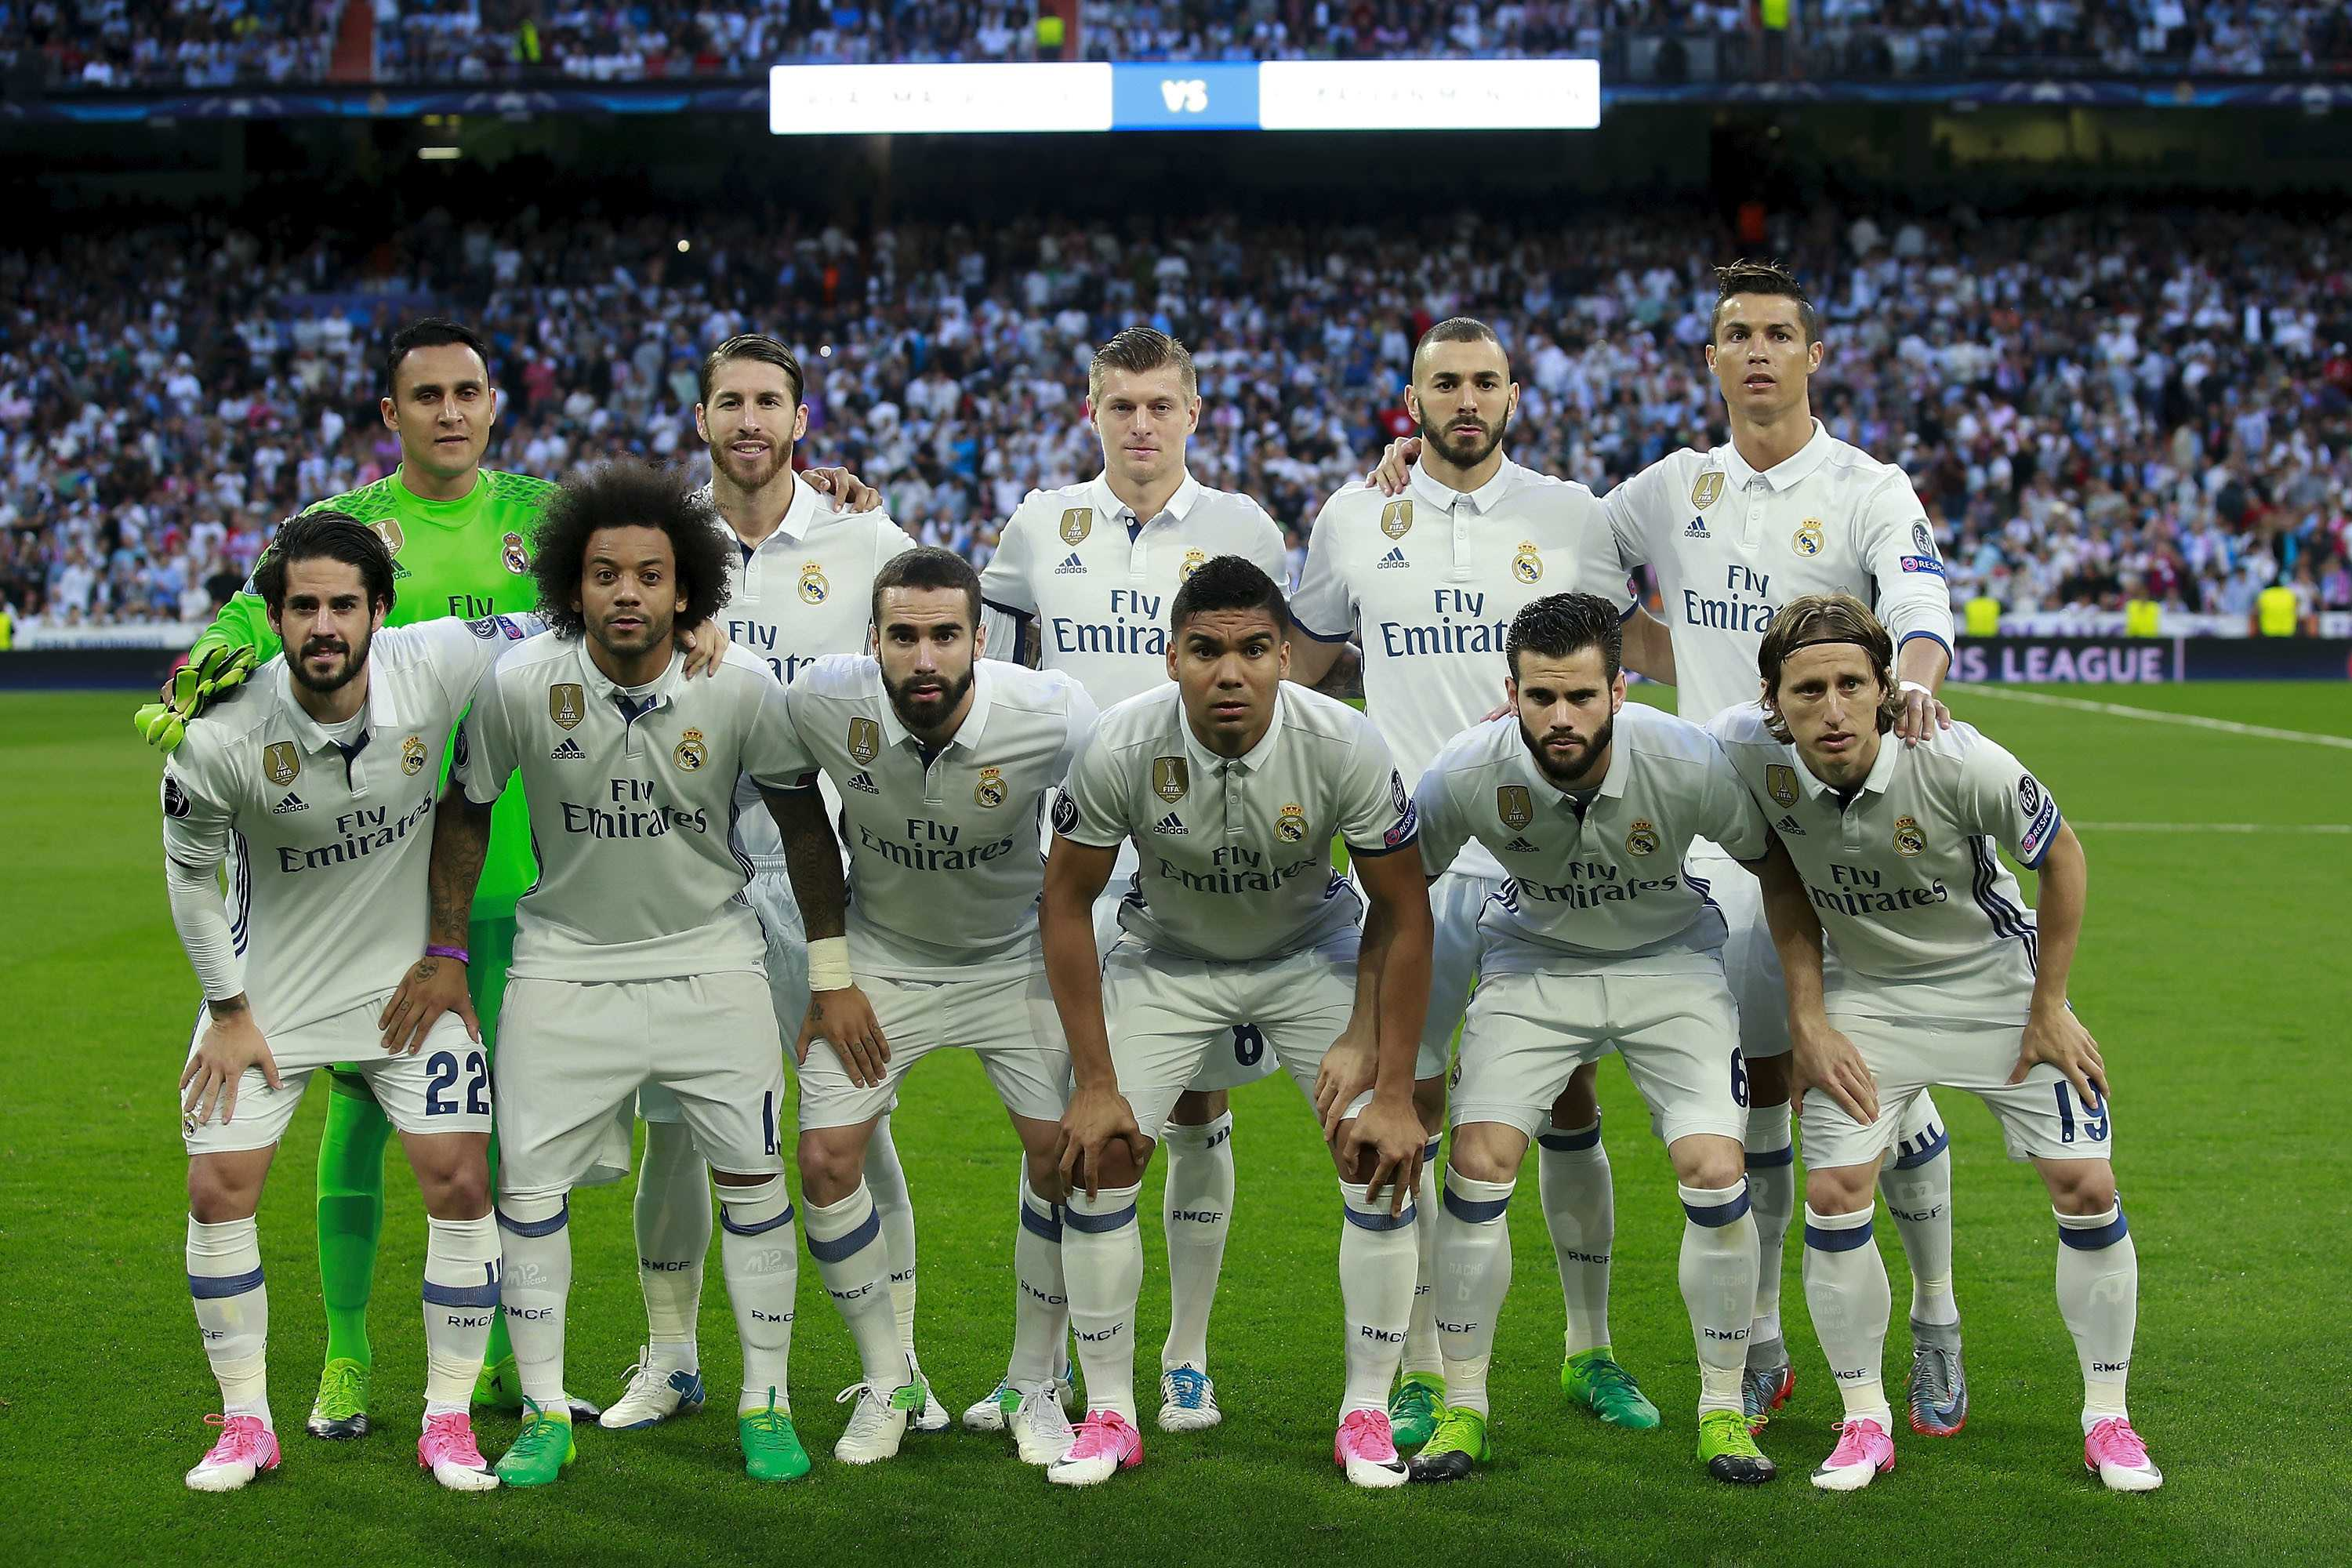 Sport Wallpaper Real Madrid: Real Madrid Players 2018 Wallpapers